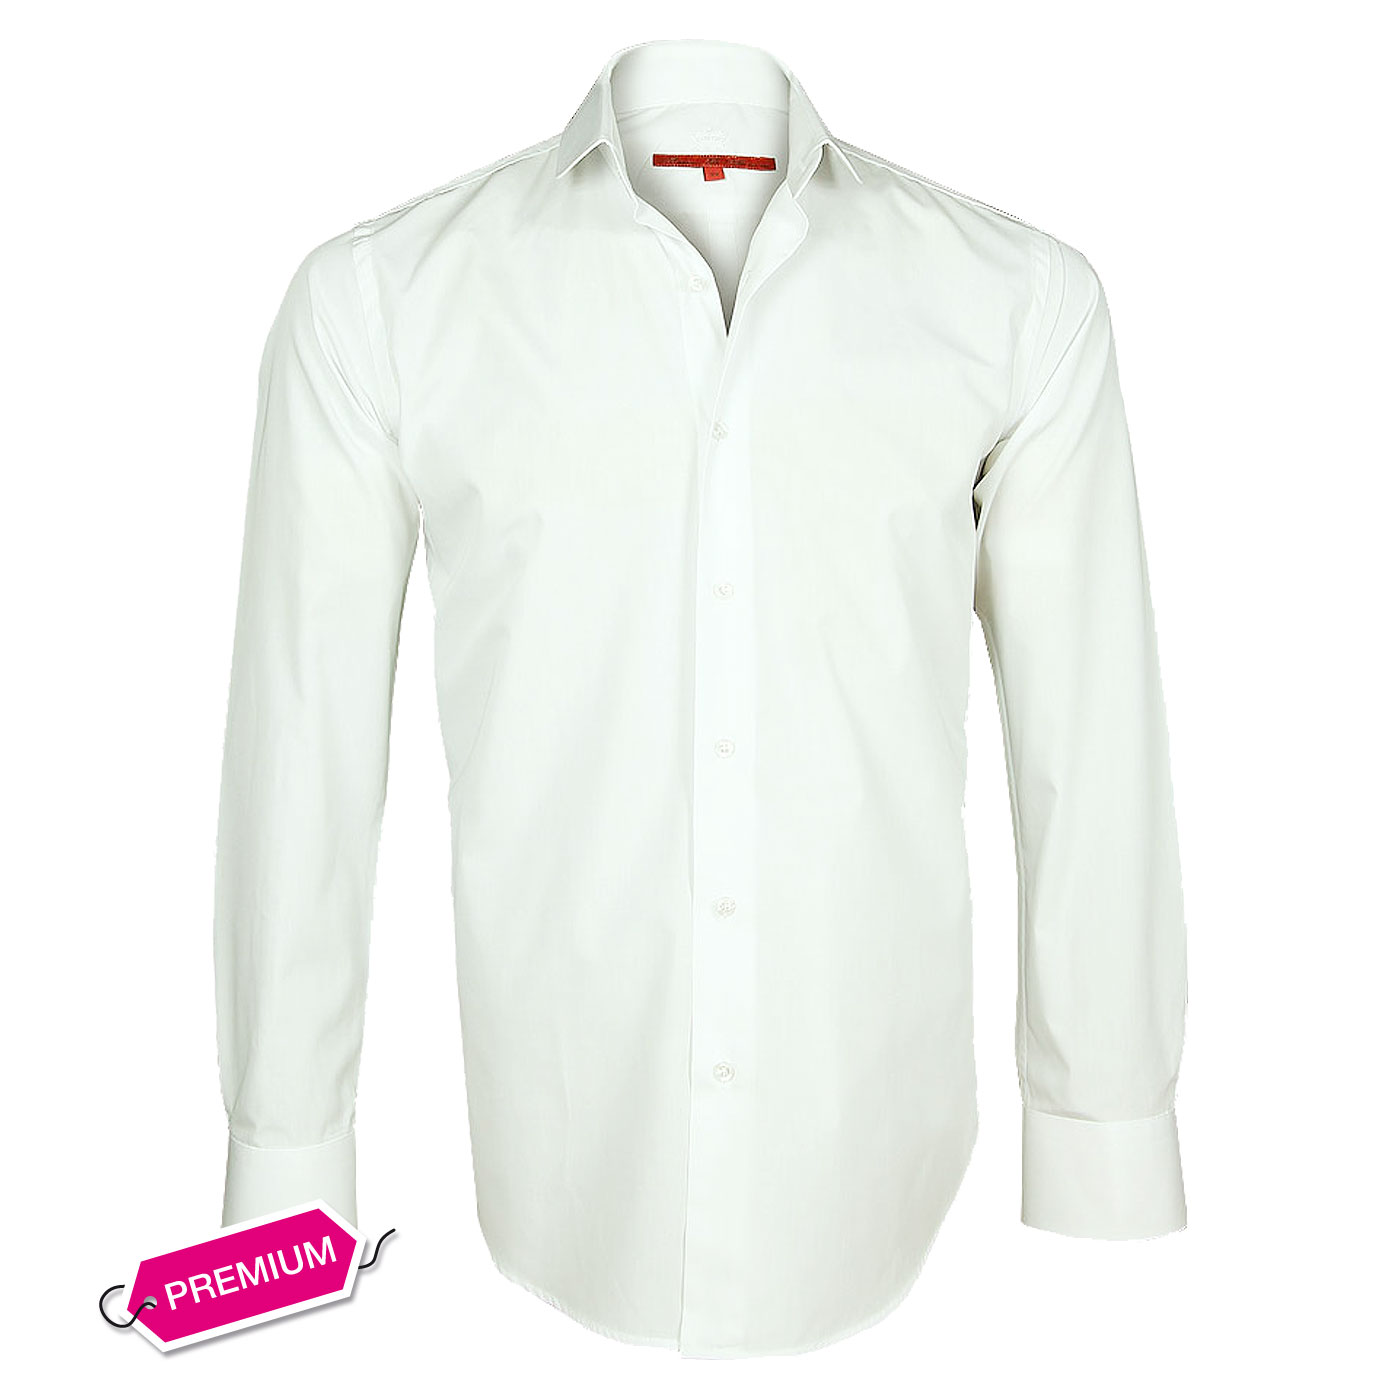 Men's Shirt go to Essential with a Premium Shirt